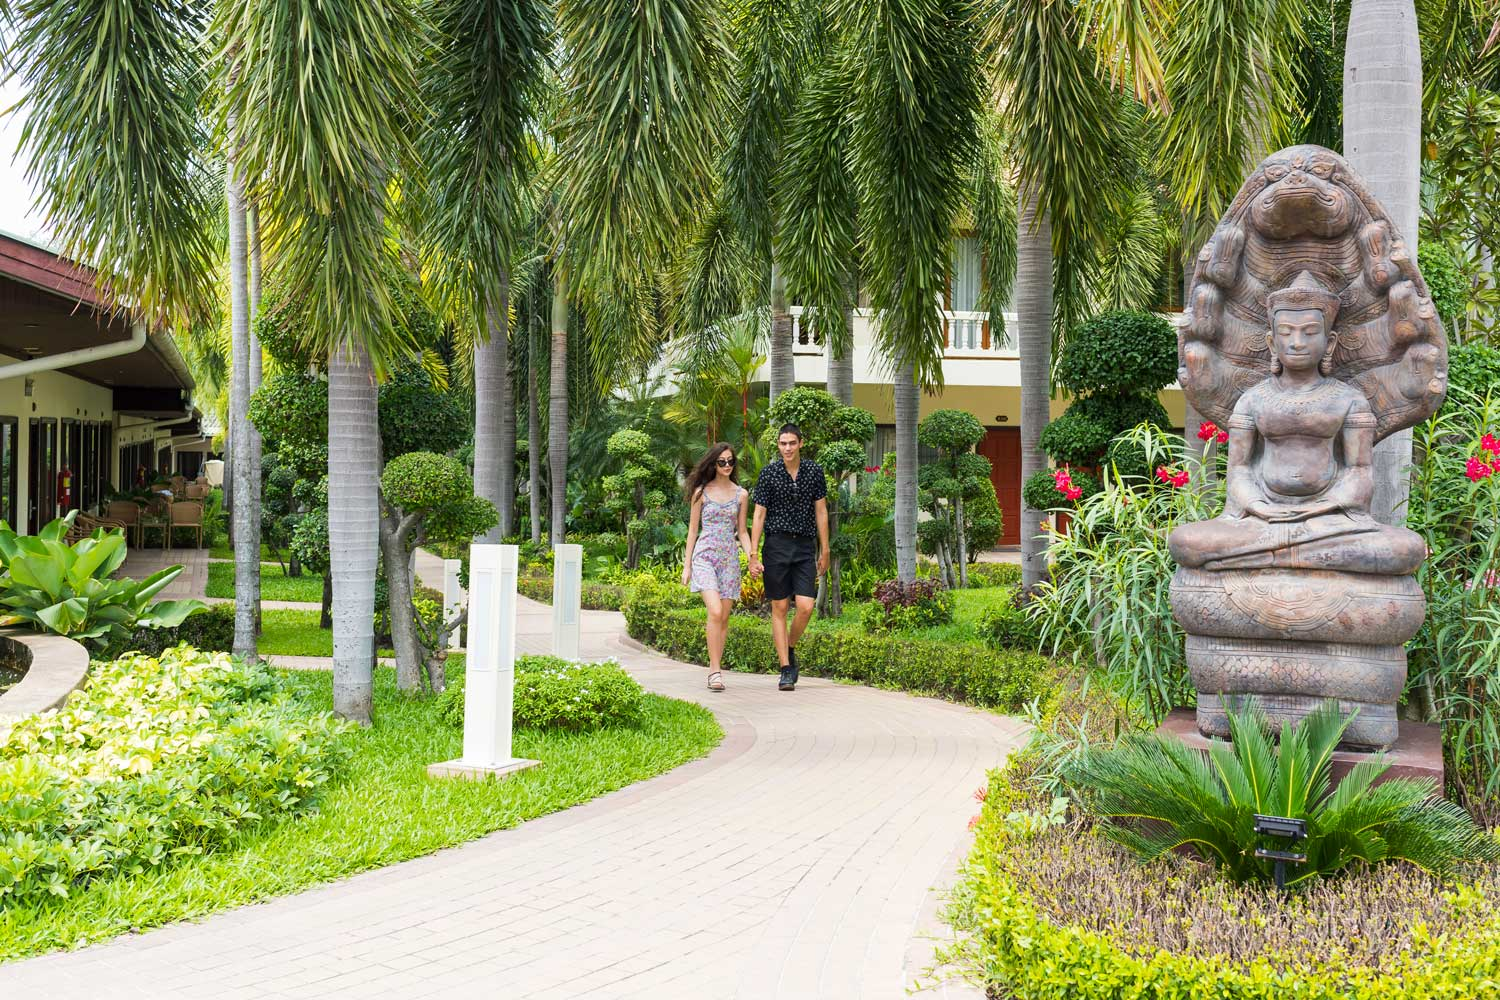 Couple walking in the under Palm Trees at Thai garden Resort in Pattaya Thailand